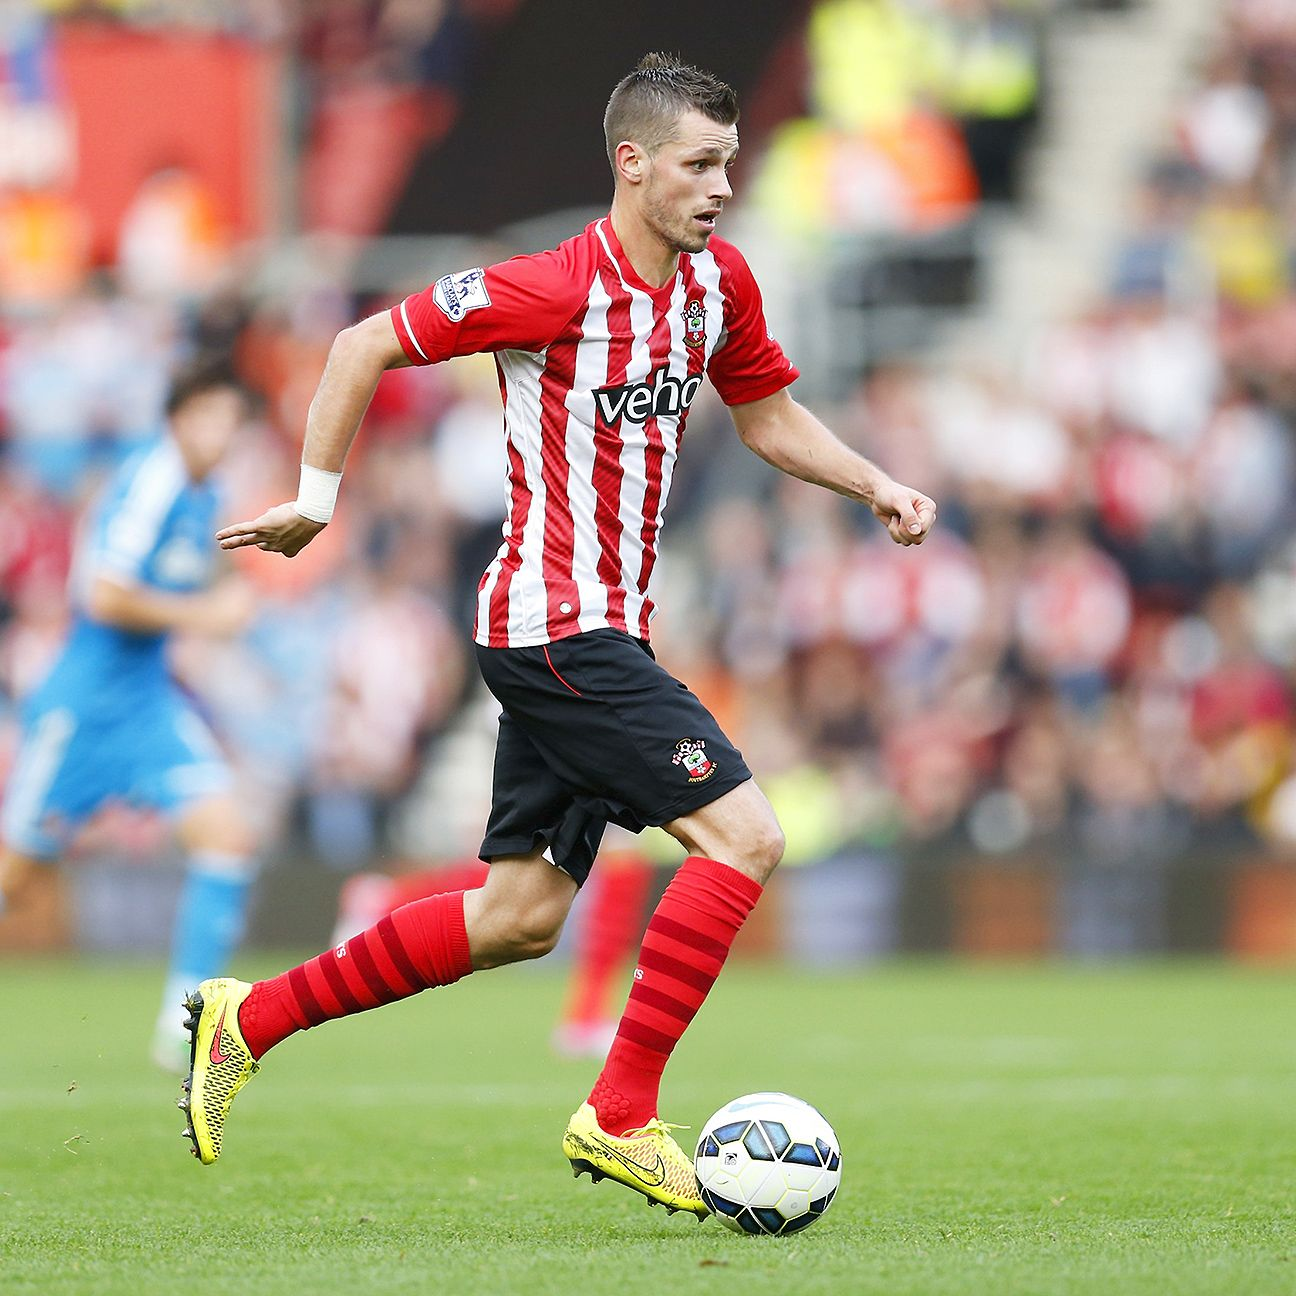 Southampton's midfield will be shored up thanks to the return of Morgan Schneiderlin from suspension.